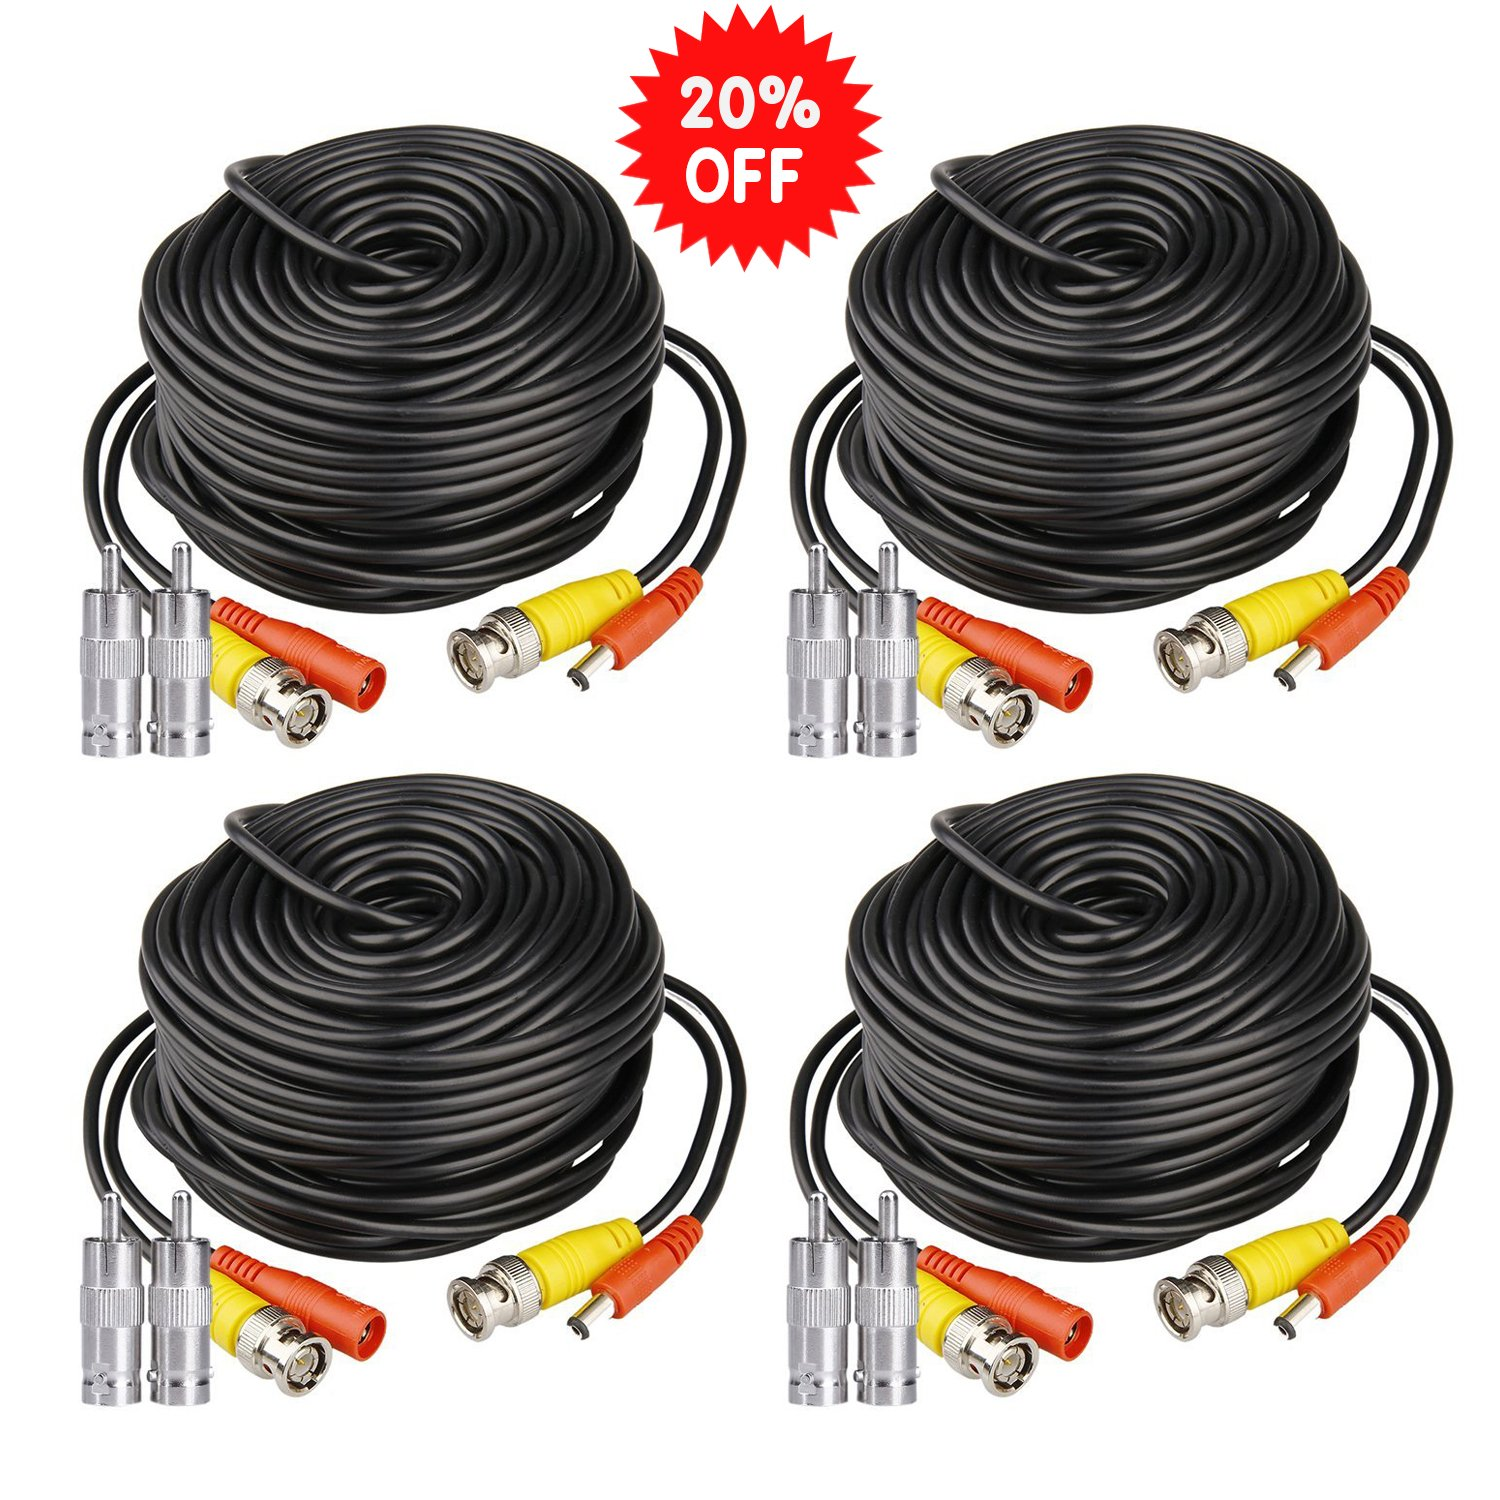 HISVISION 4 Pack 100ft BNC Video Power Cable Security Camera Wire Cord Extension Cable with 8pcs BNC to RCA Connectors for CCTV DVR Surveillance System